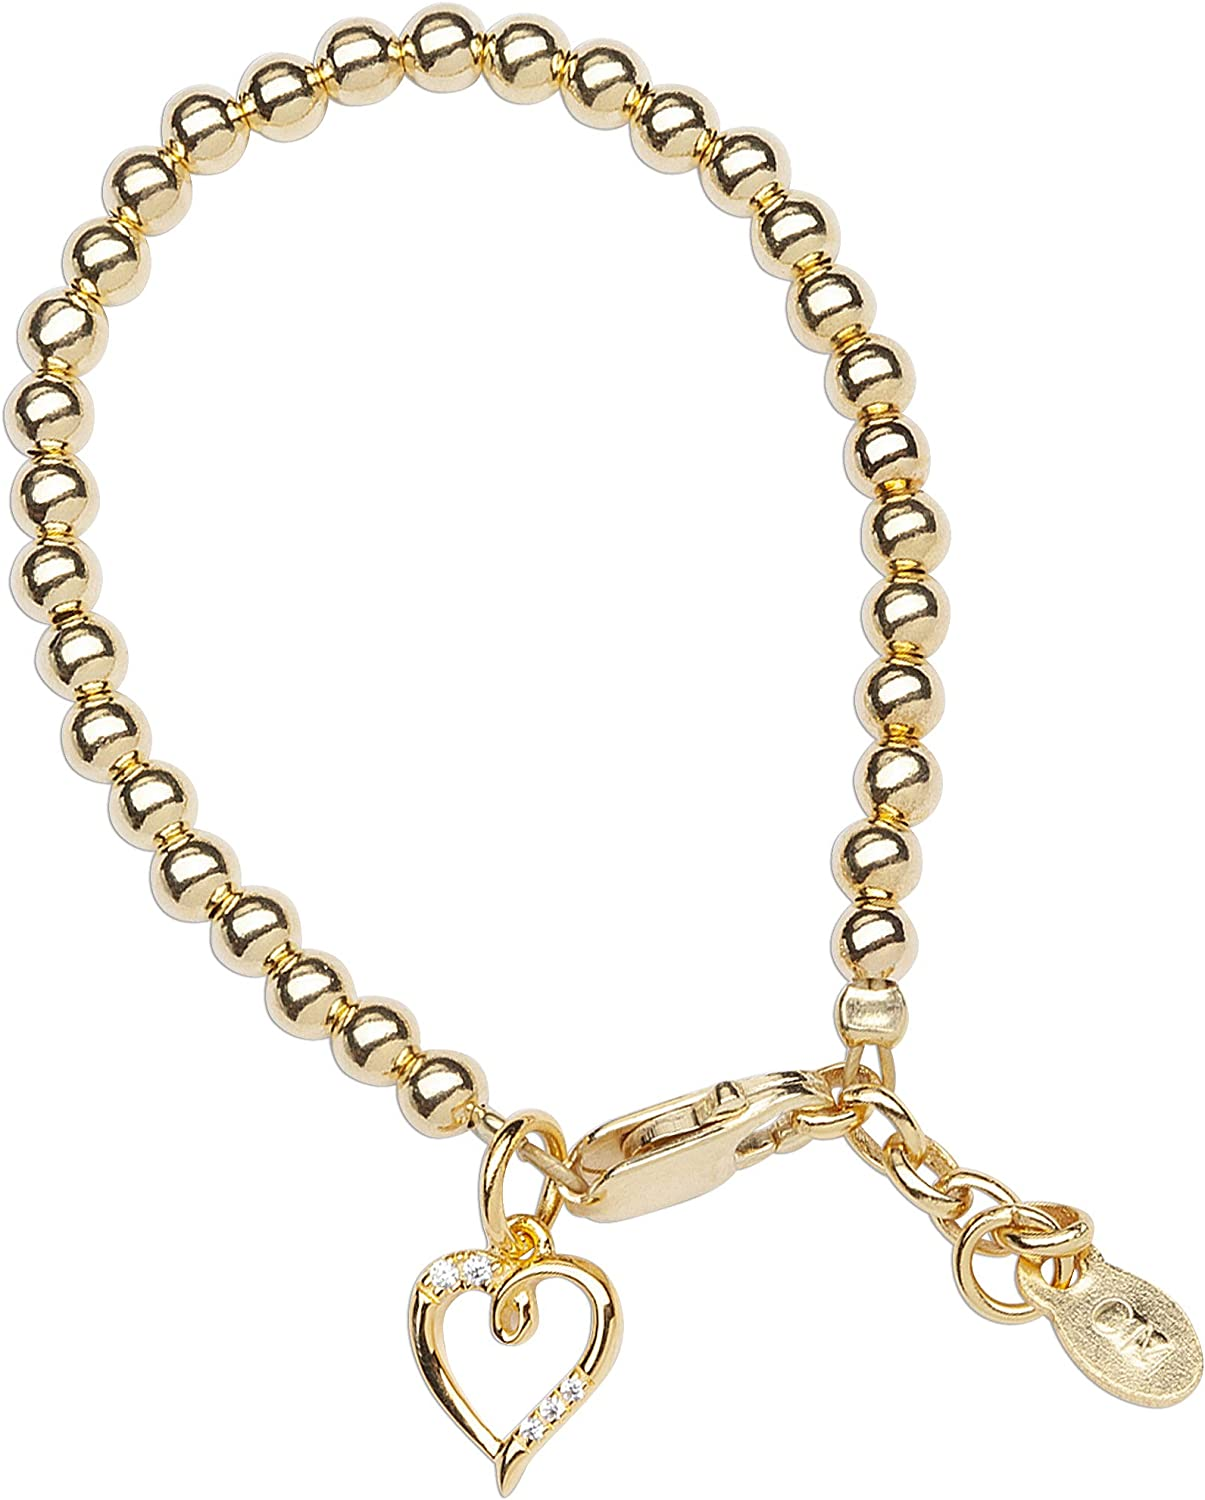 Children's 14K Gold-plated Bracelet with Open Heart Charm for Girls